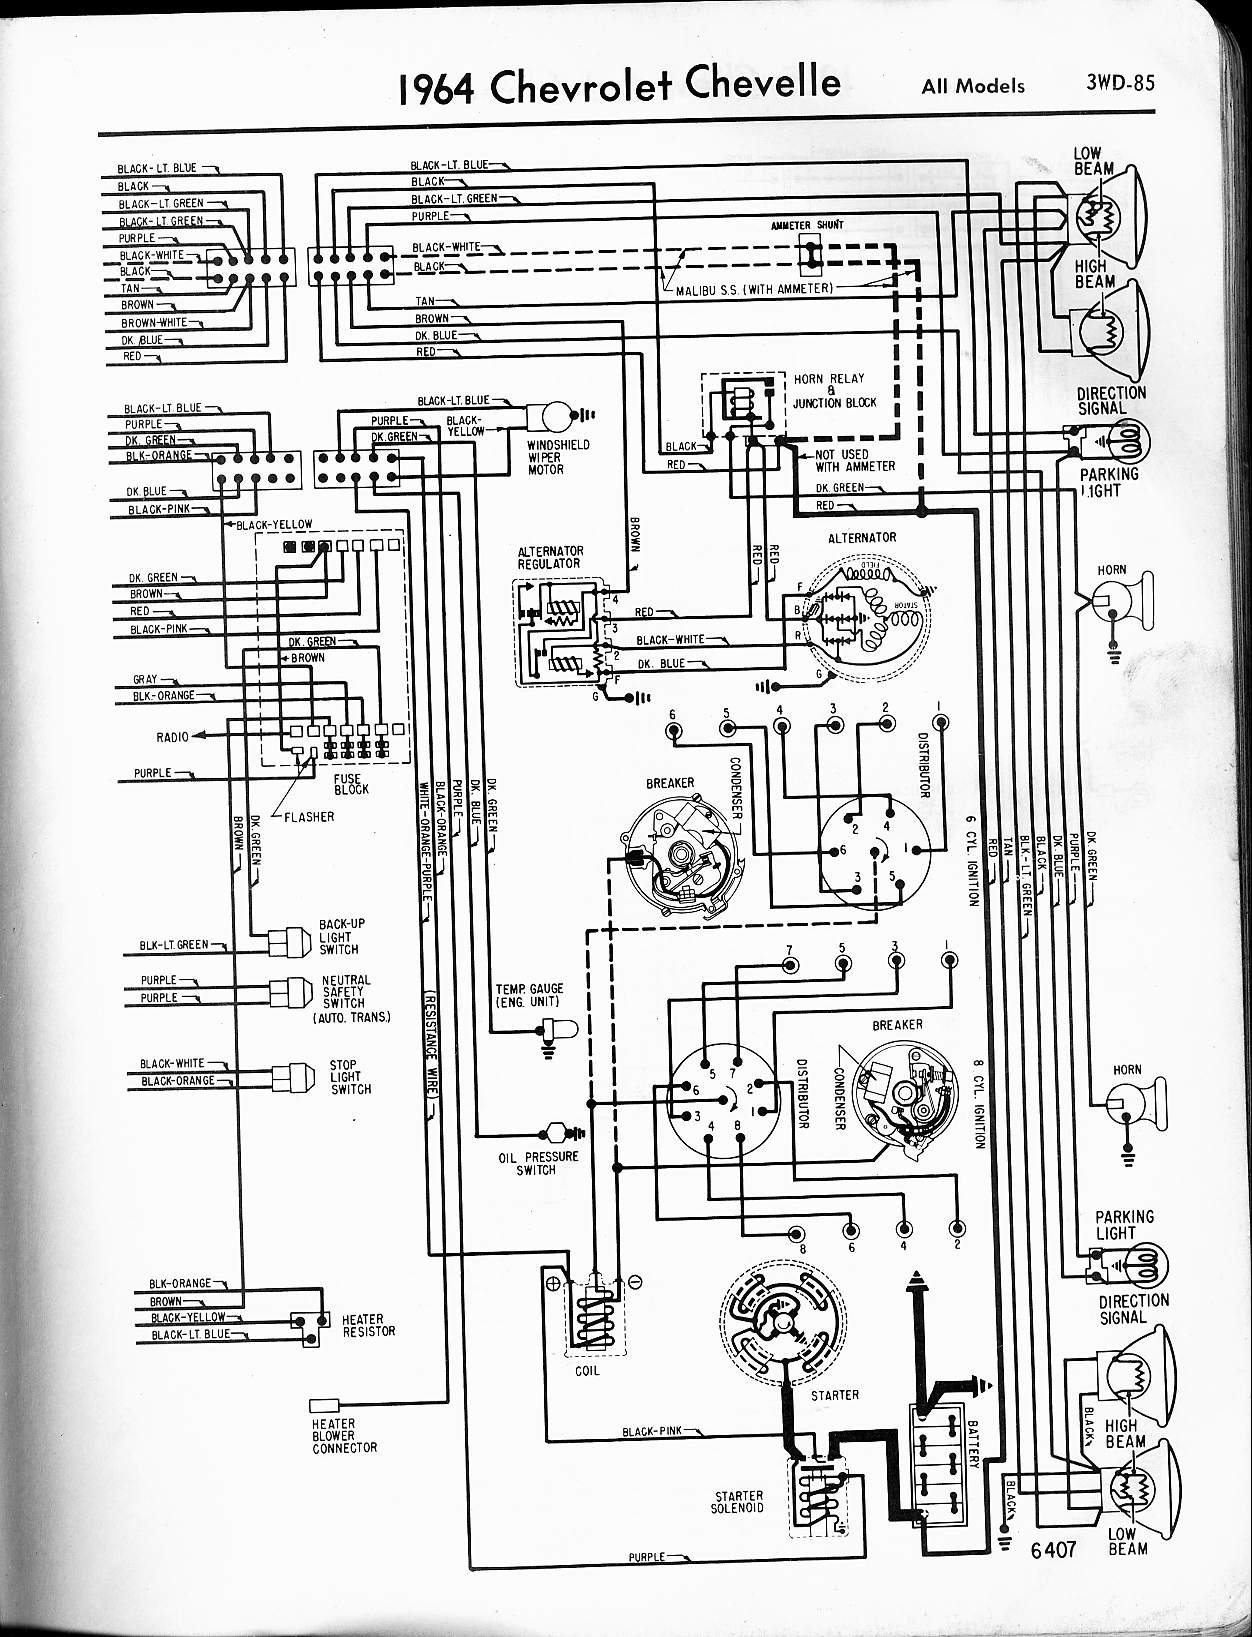 64 Impala Light Wire Diagram Books Of Wiring 1996 Honda Civic Rear Lighting 1968 Lights Simple Rh David Huggett Co Uk